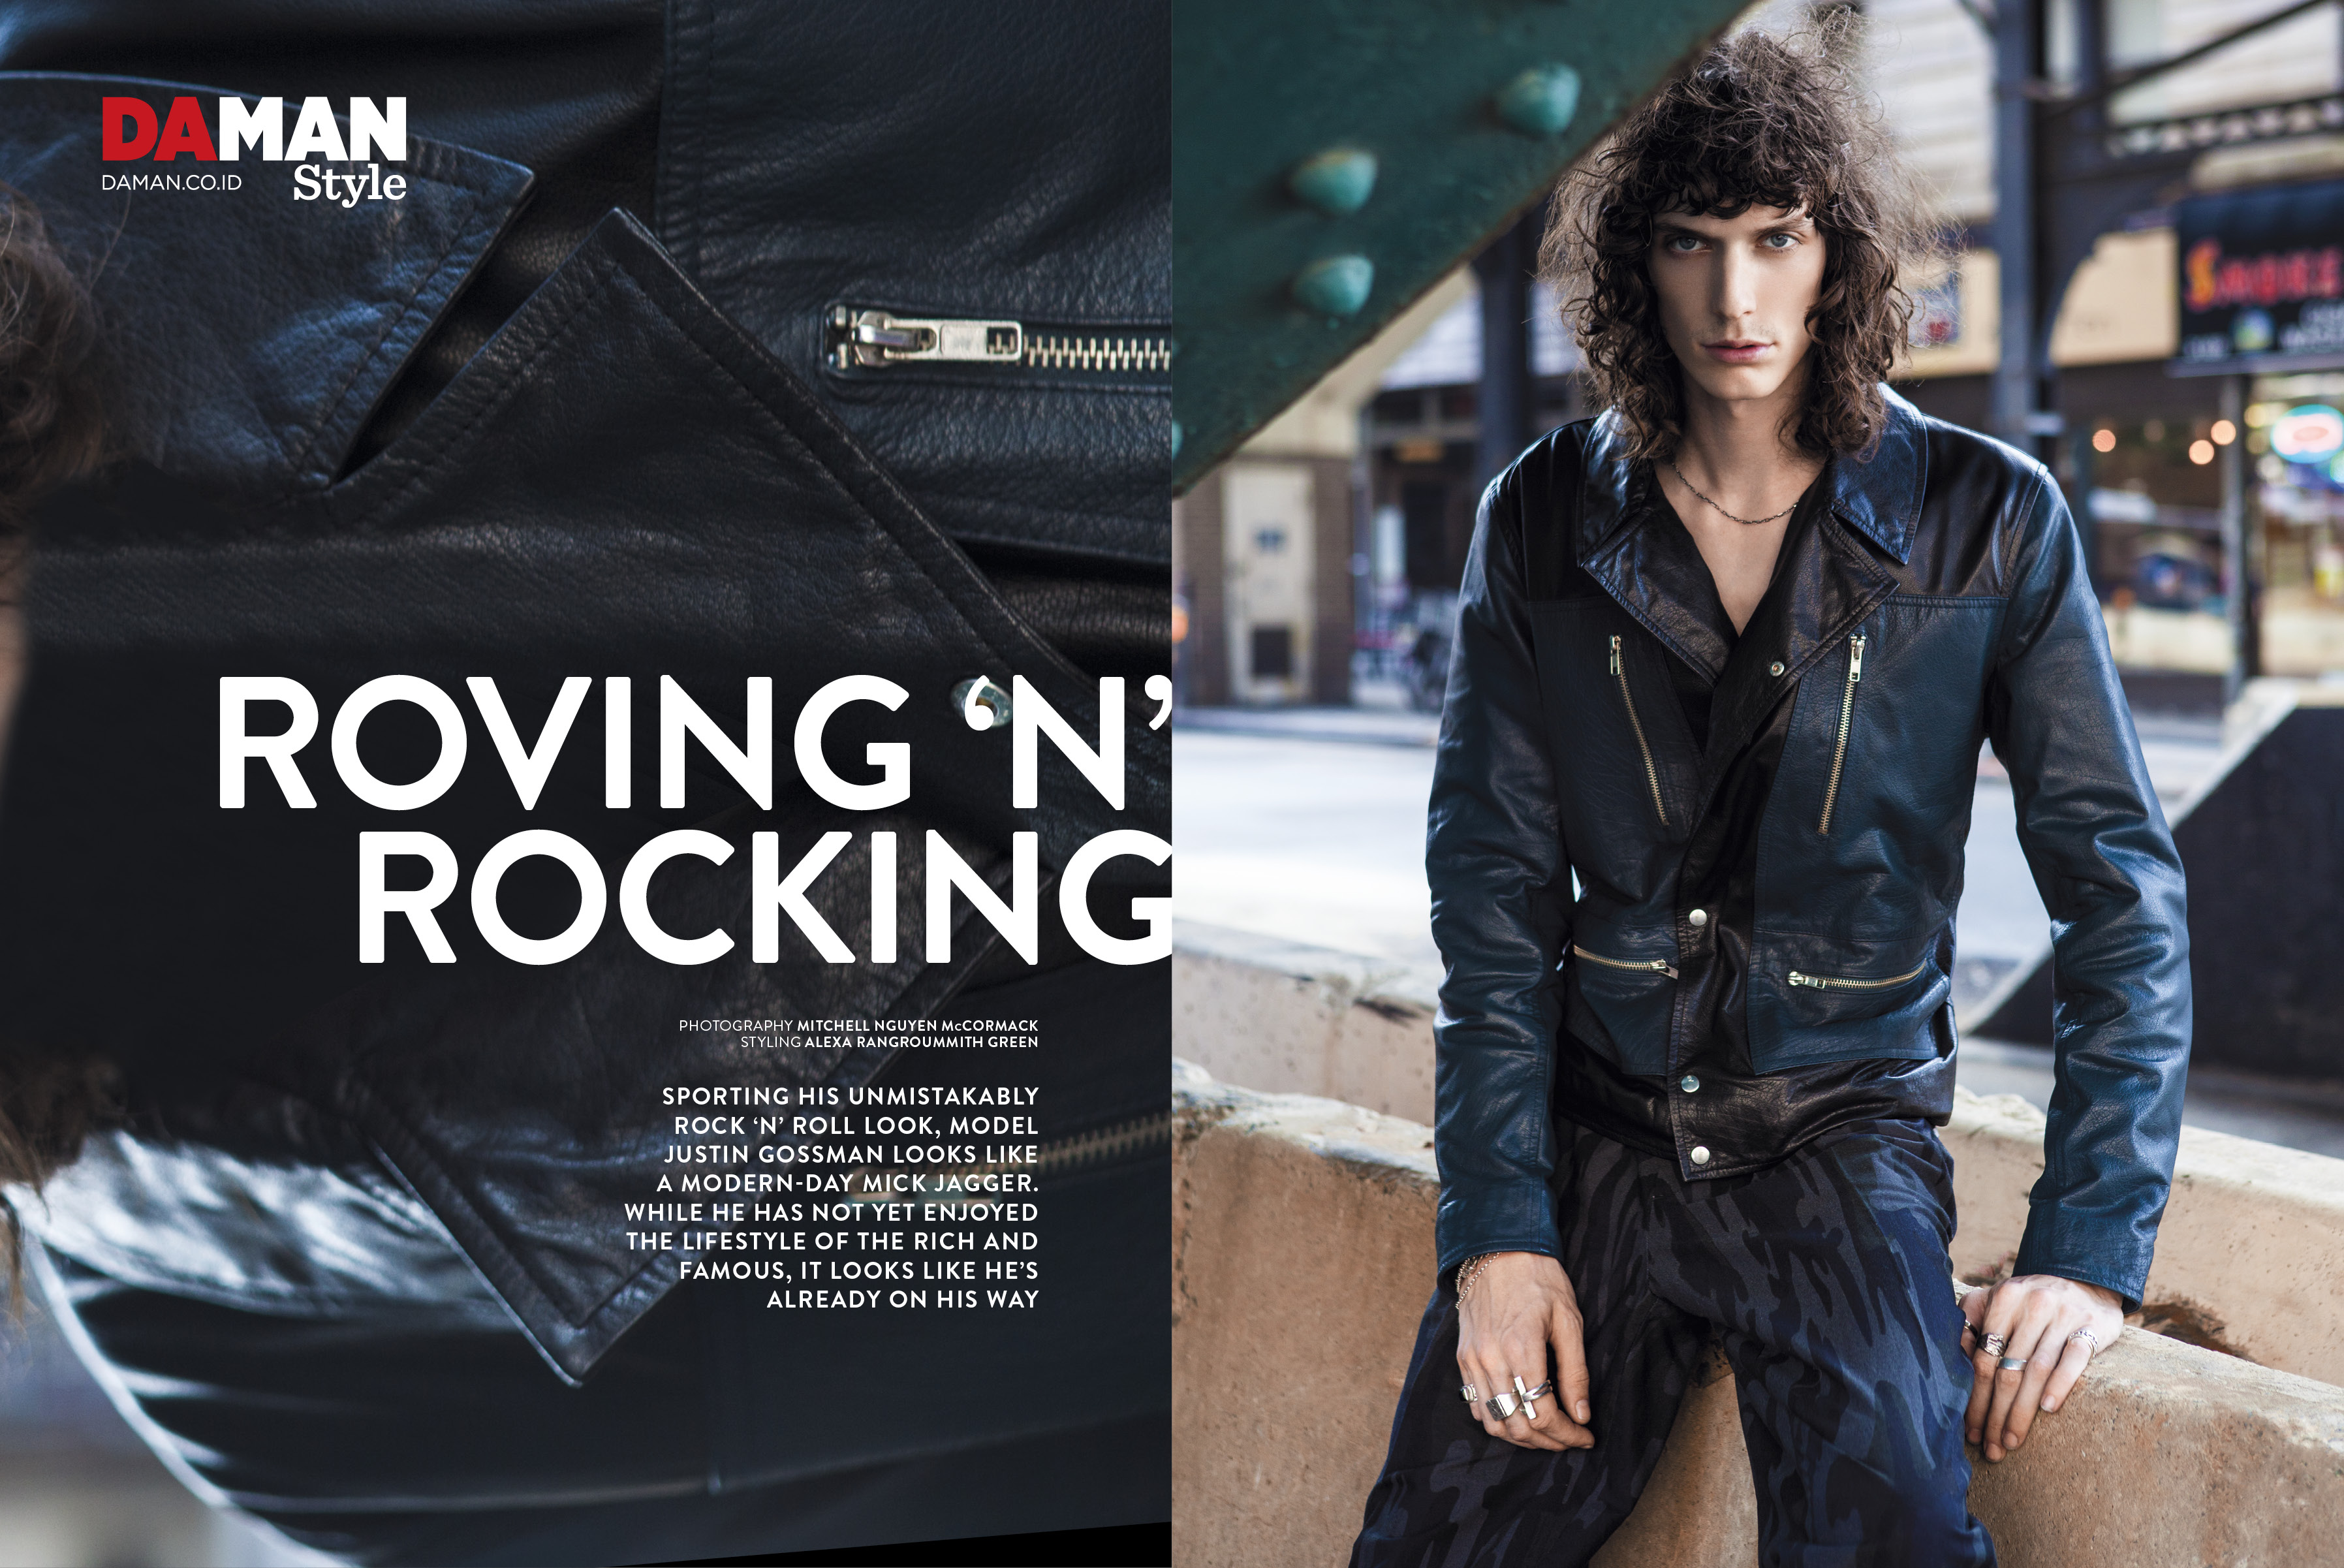 Fashion Spread: Roving N' Rocking